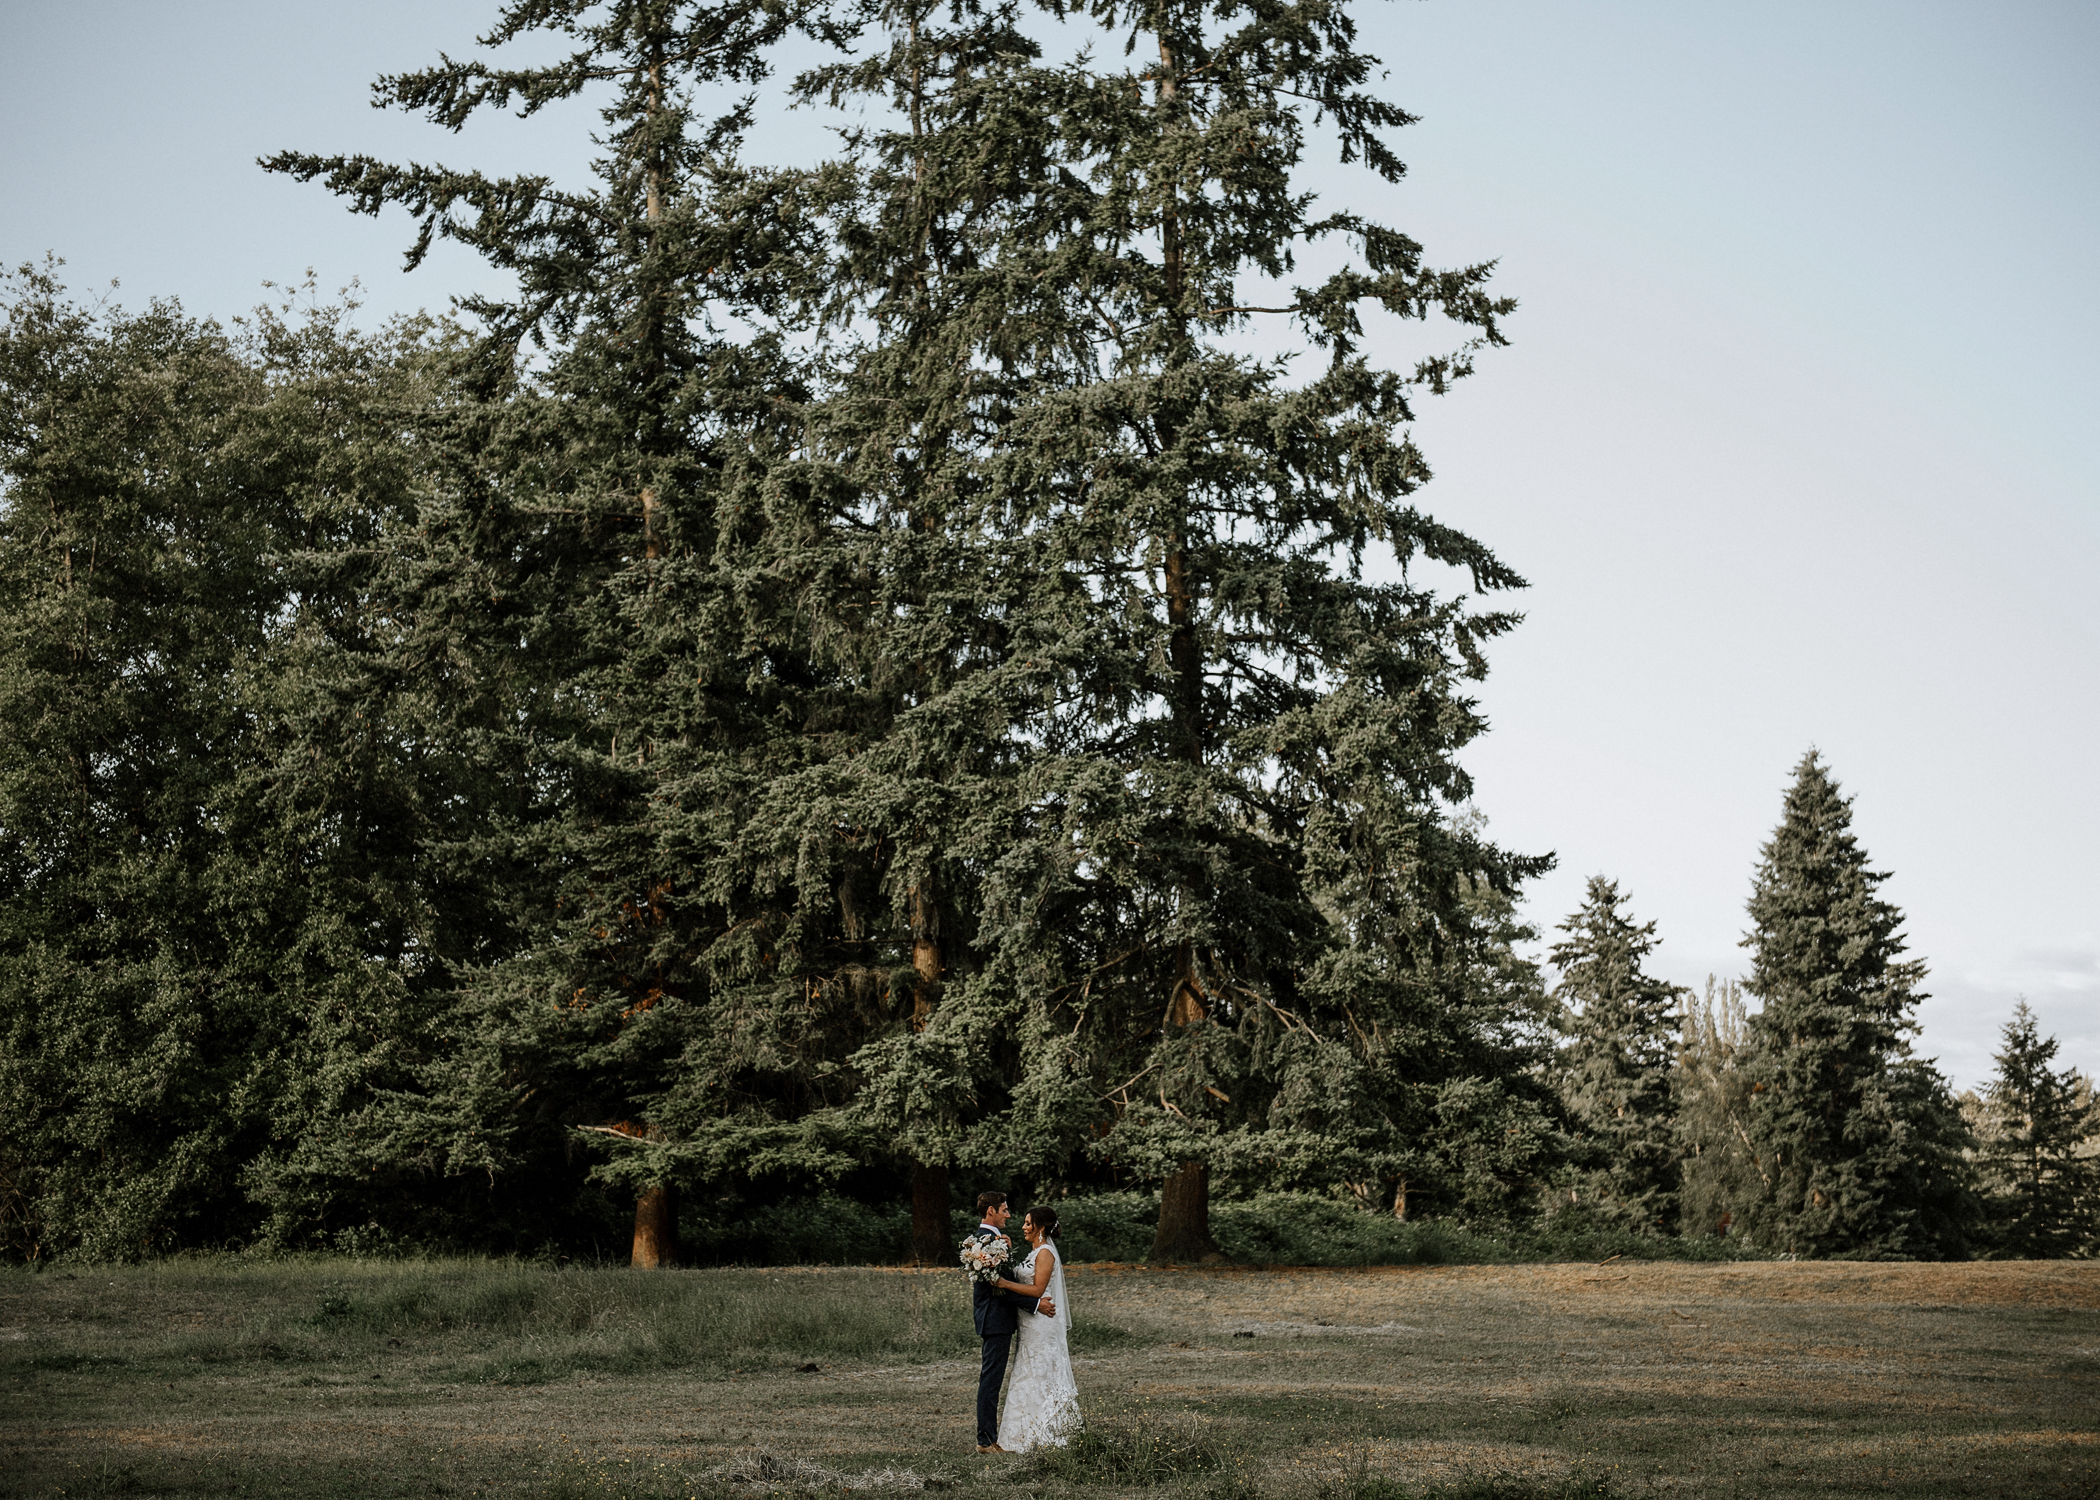 043-kaoverii-silva-KM-prewedding-vancouver-photography-webbs-holiday-acres-horse-ranch-blog.png